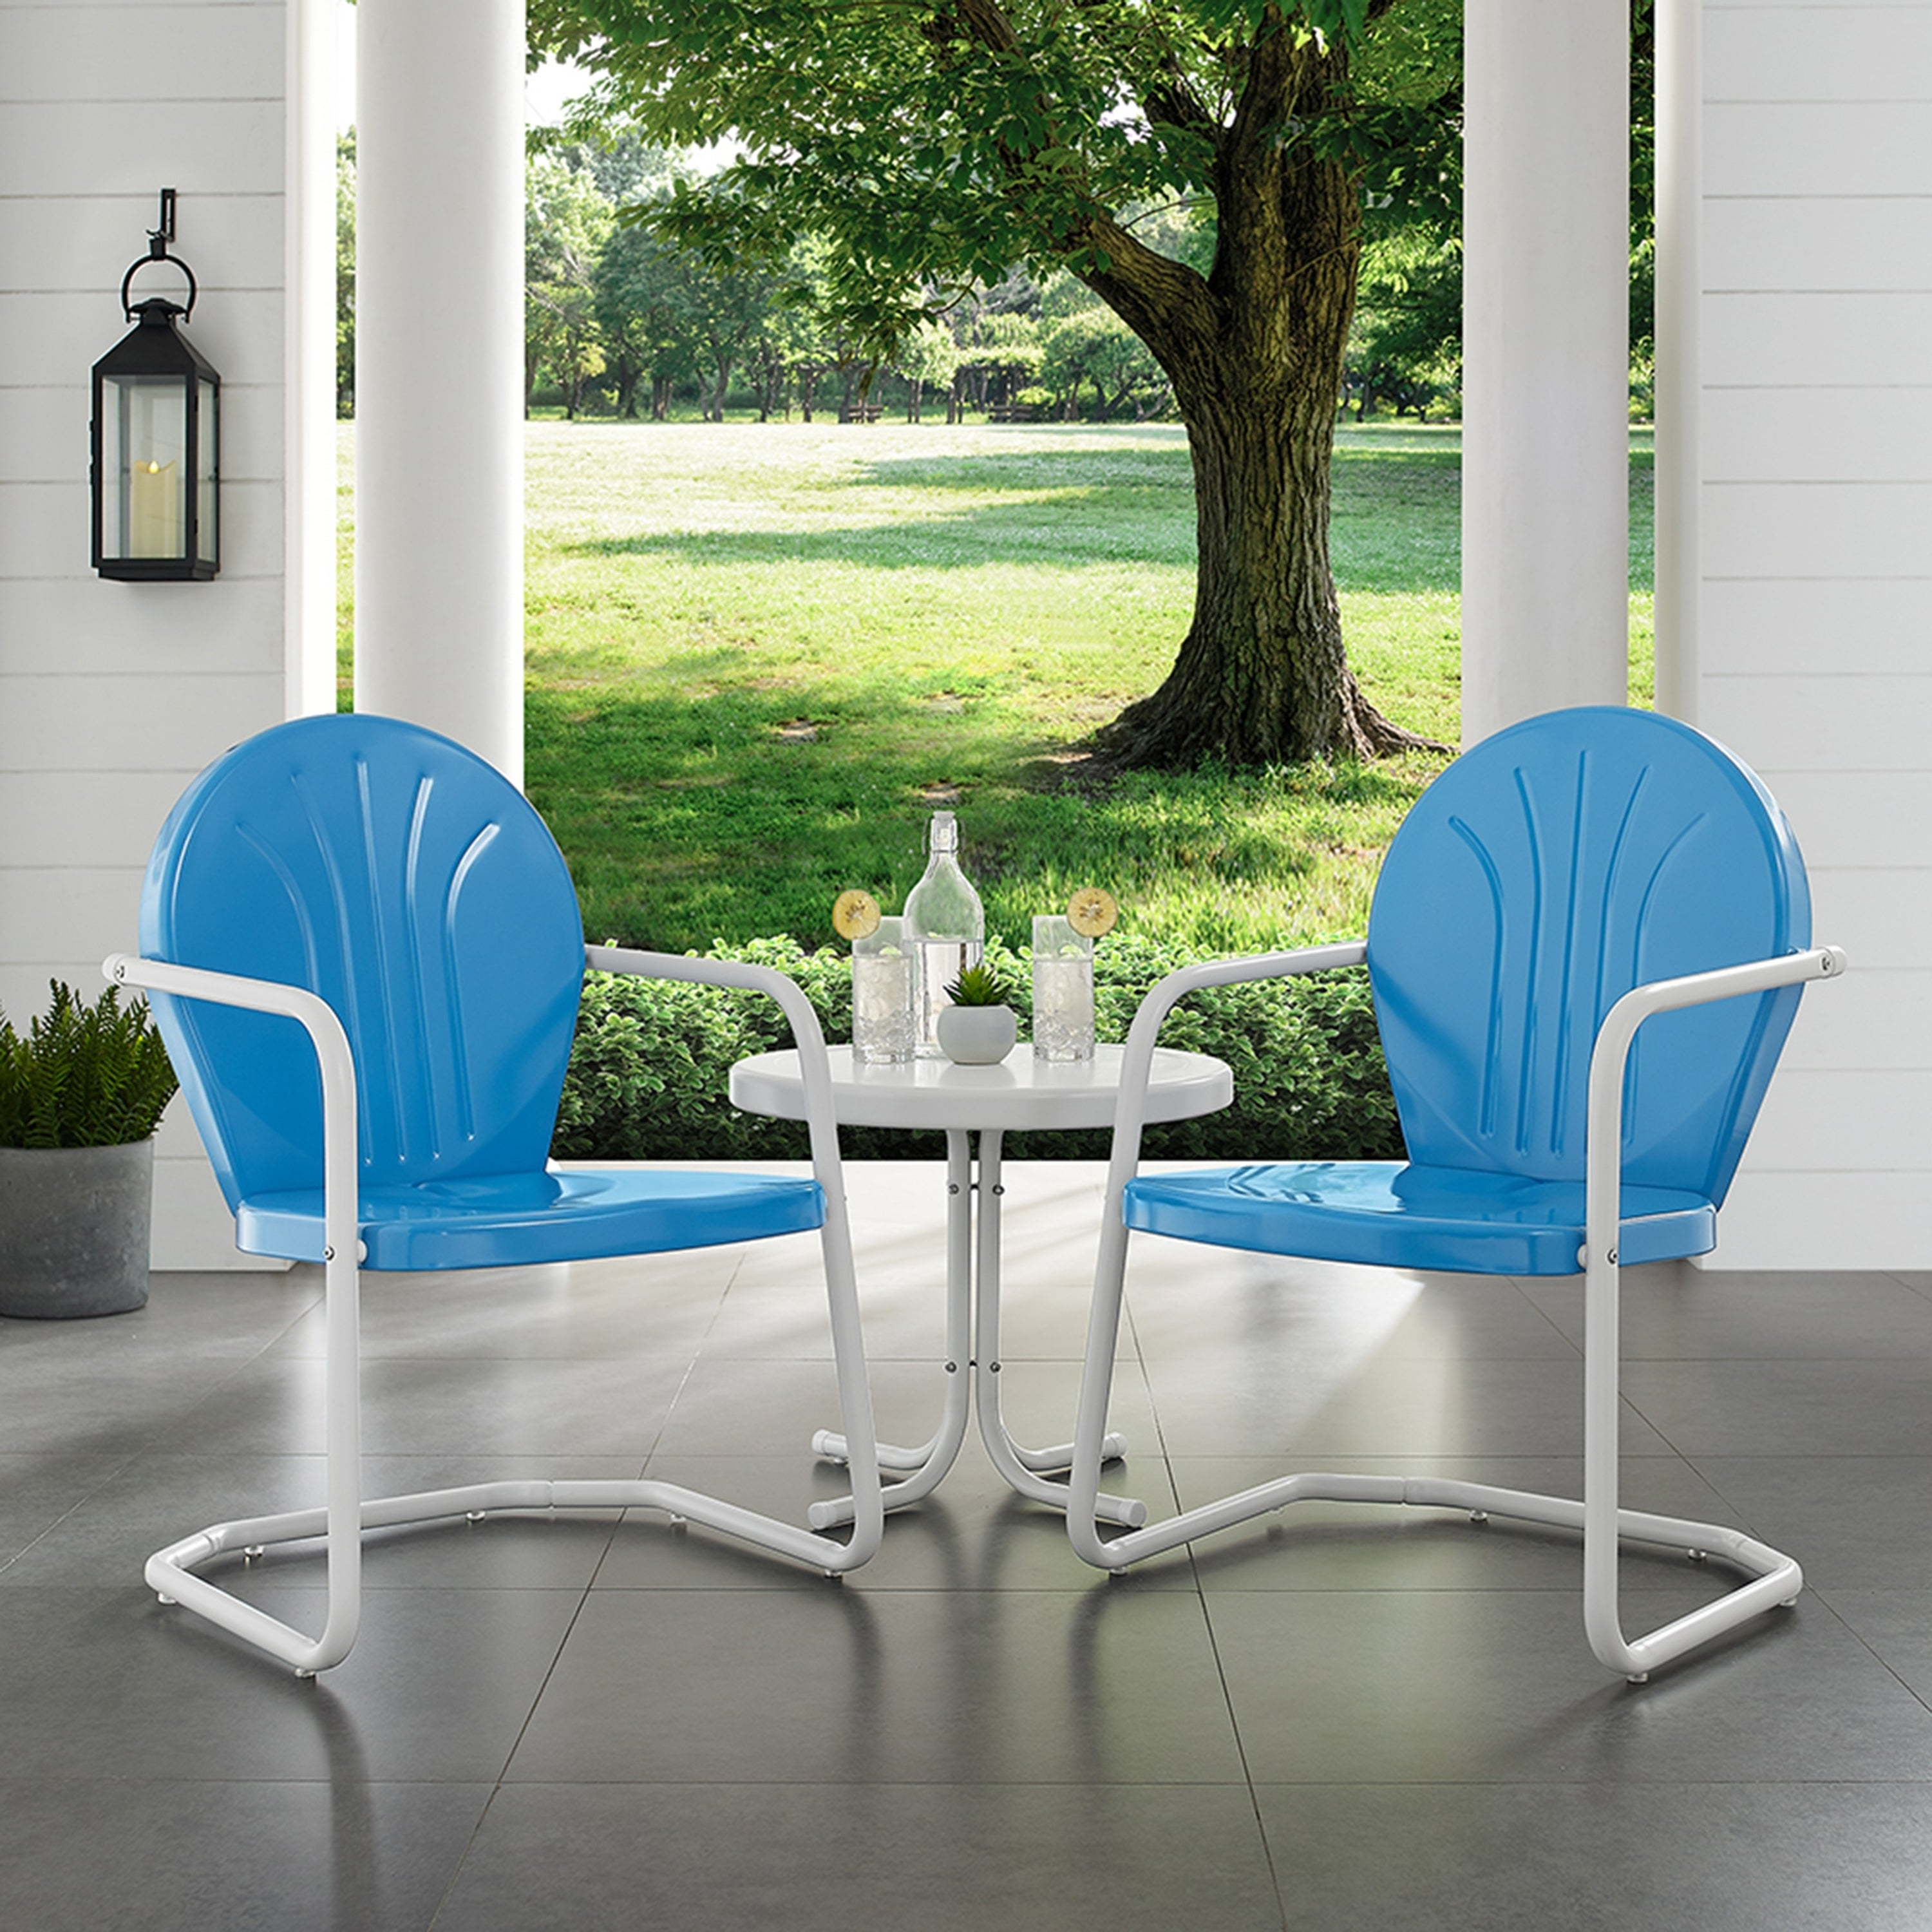 Find Great Outdoor Seating & Dining Deals (Gallery 12 of 20)